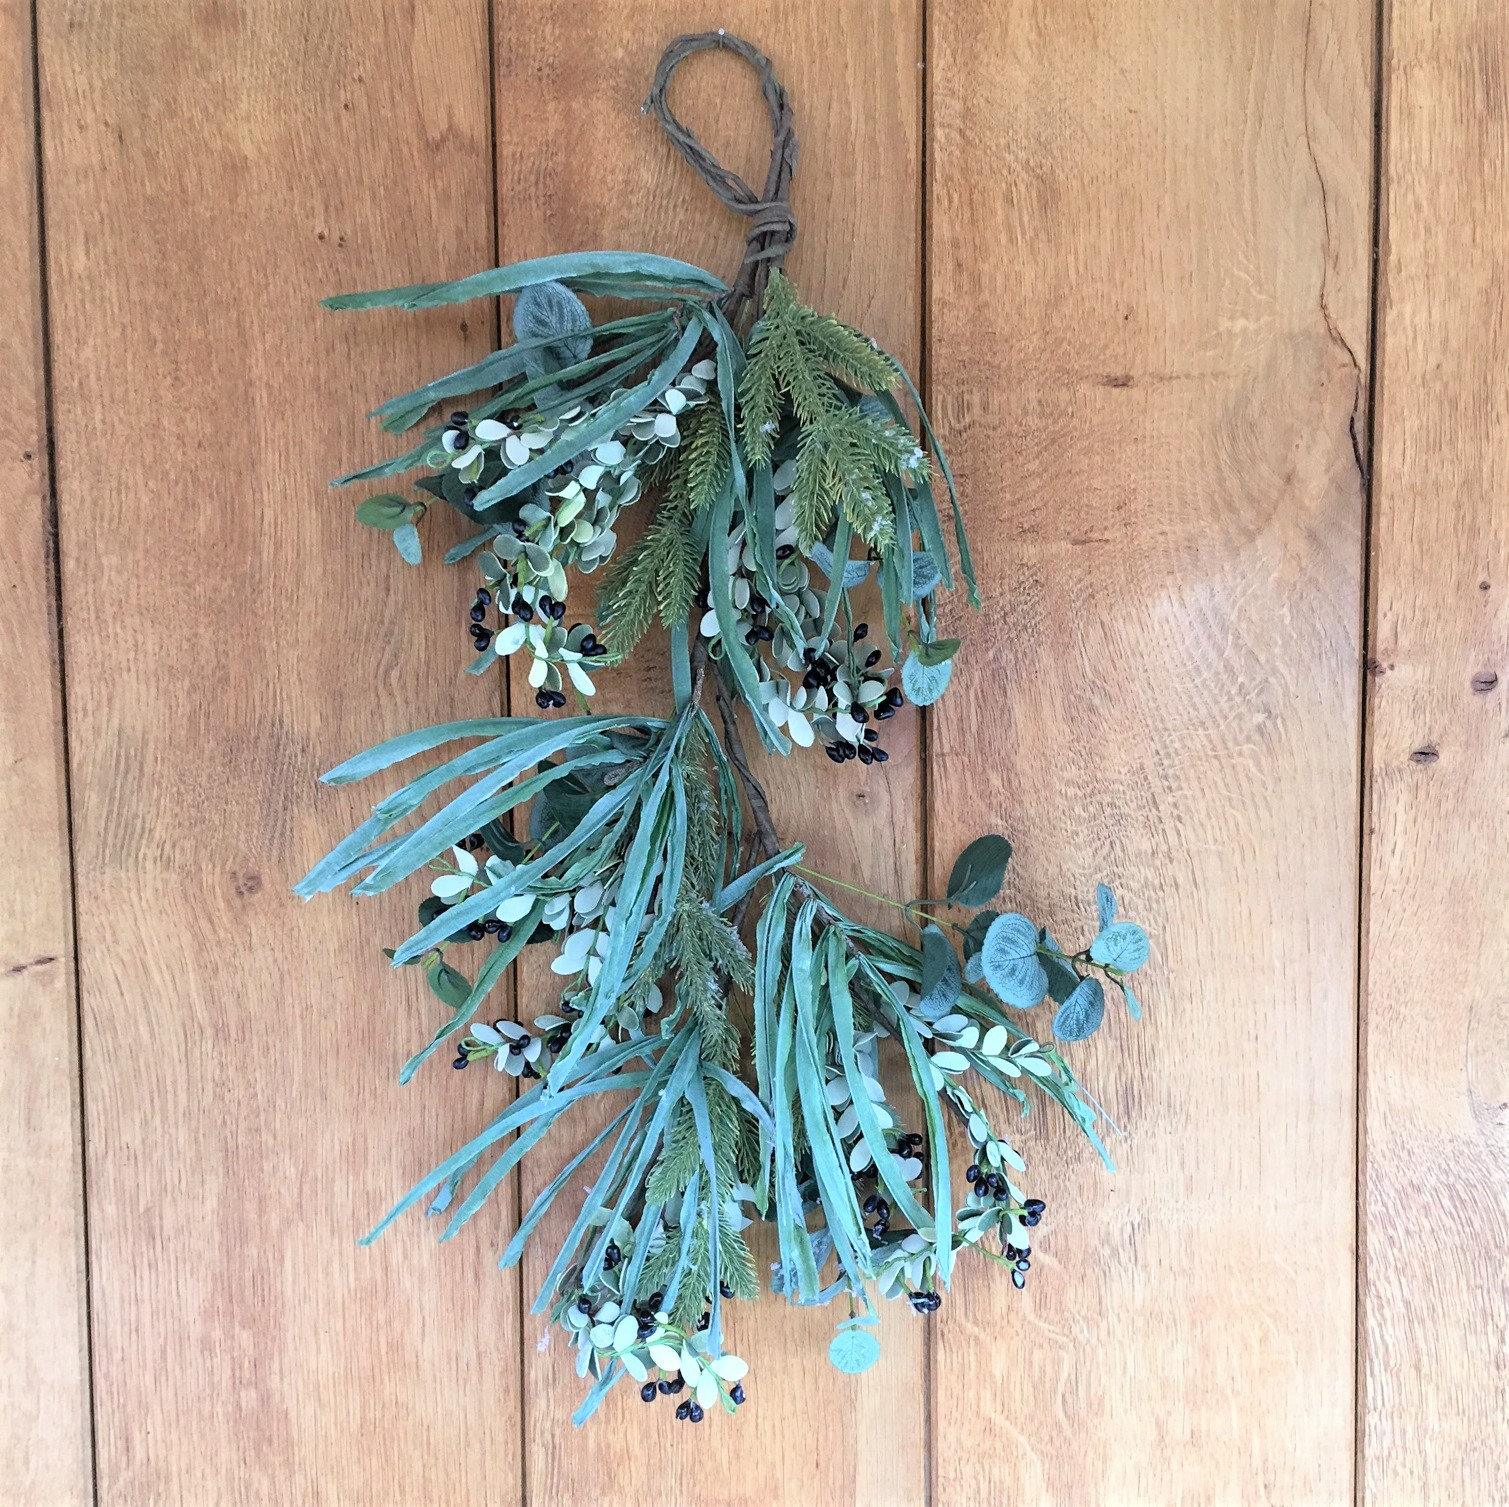 Winter dusted eucalyptus spruce fir berries swag for Bedroom kandi swag bag